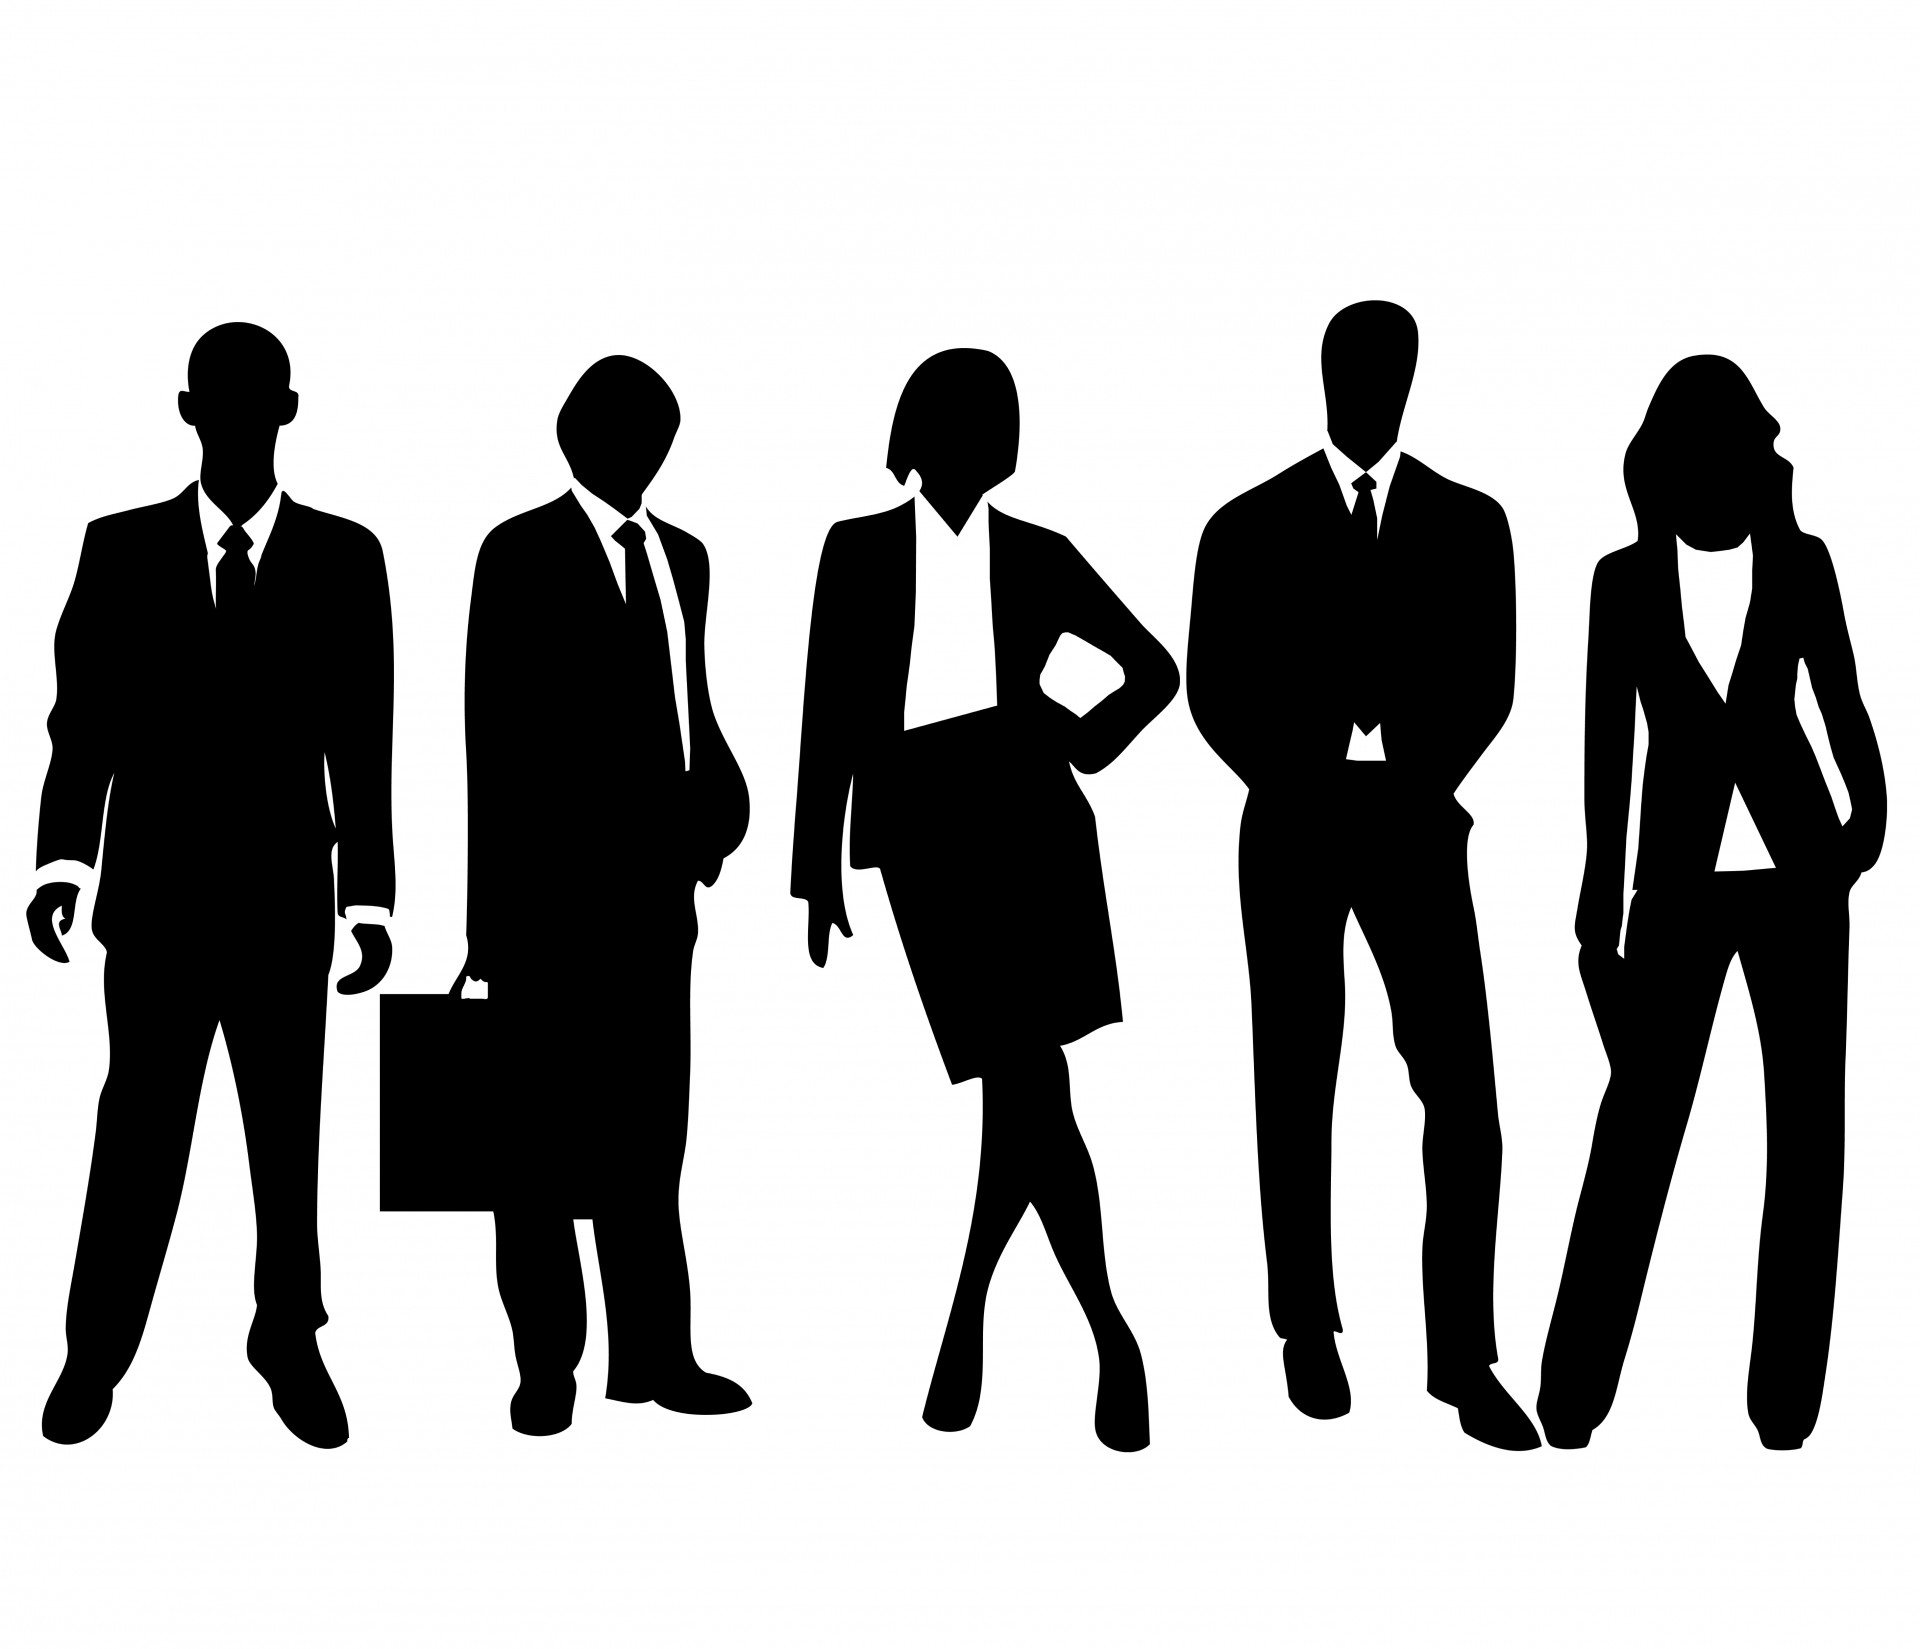 Business Clip Art Free Clipart Images-Business clip art free clipart images-2